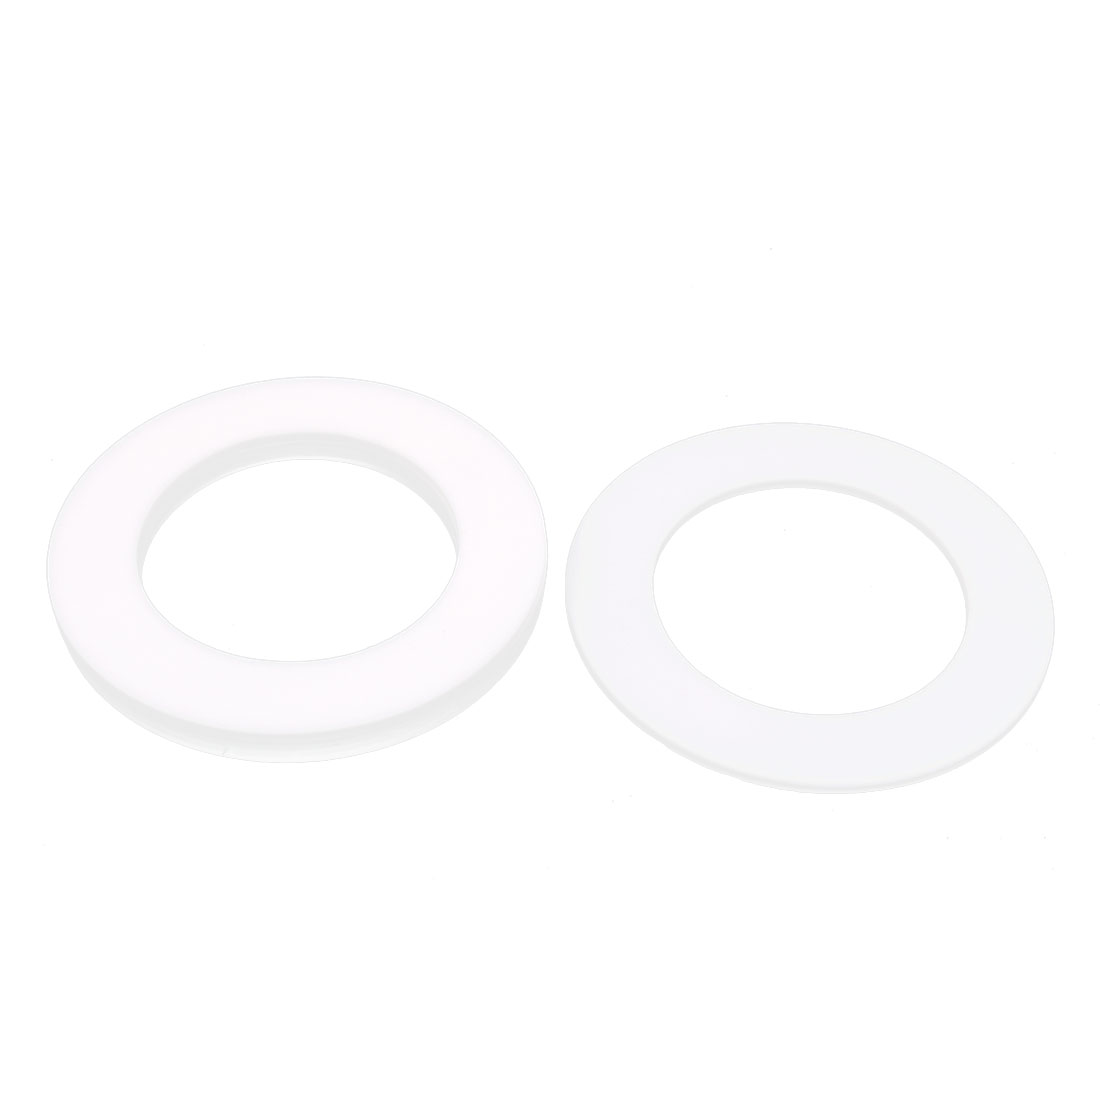 DN80 138 x 89 x 3 PTFE Flange Gasket Sanitary Pipe Fitting Ferrules White 5 pcs